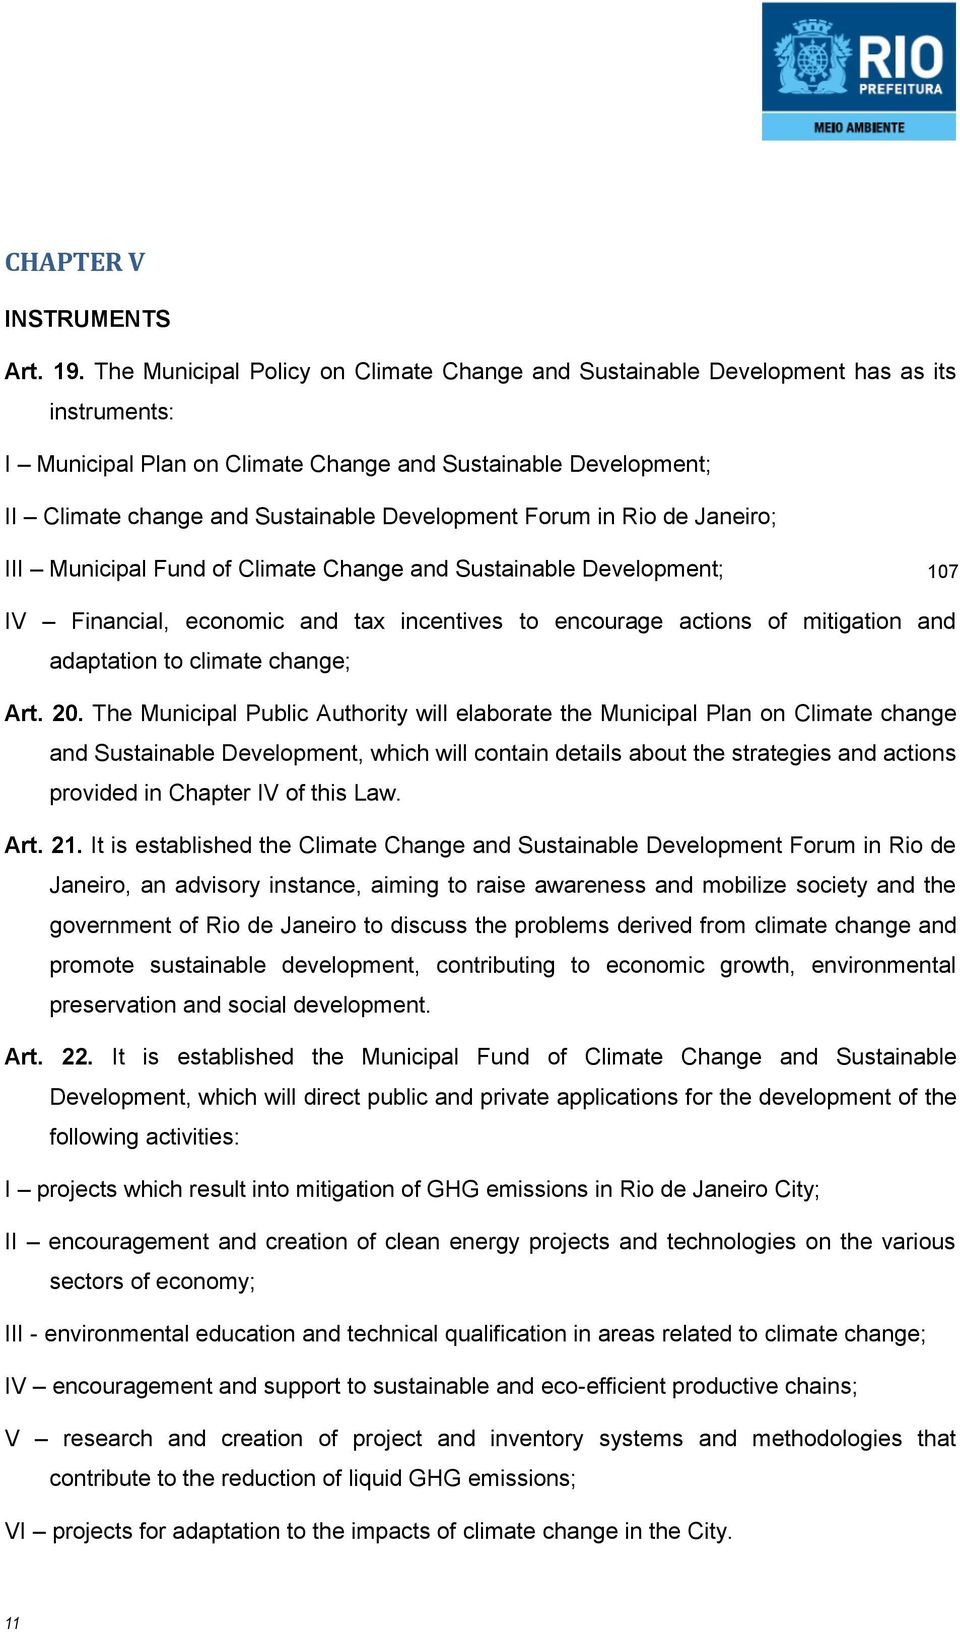 Development Forum in Rio de Janeiro; III Municipal Fund of Climate Change and Sustainable Development; 107 IV Financial, economic and tax incentives to encourage actions of mitigation and adaptation